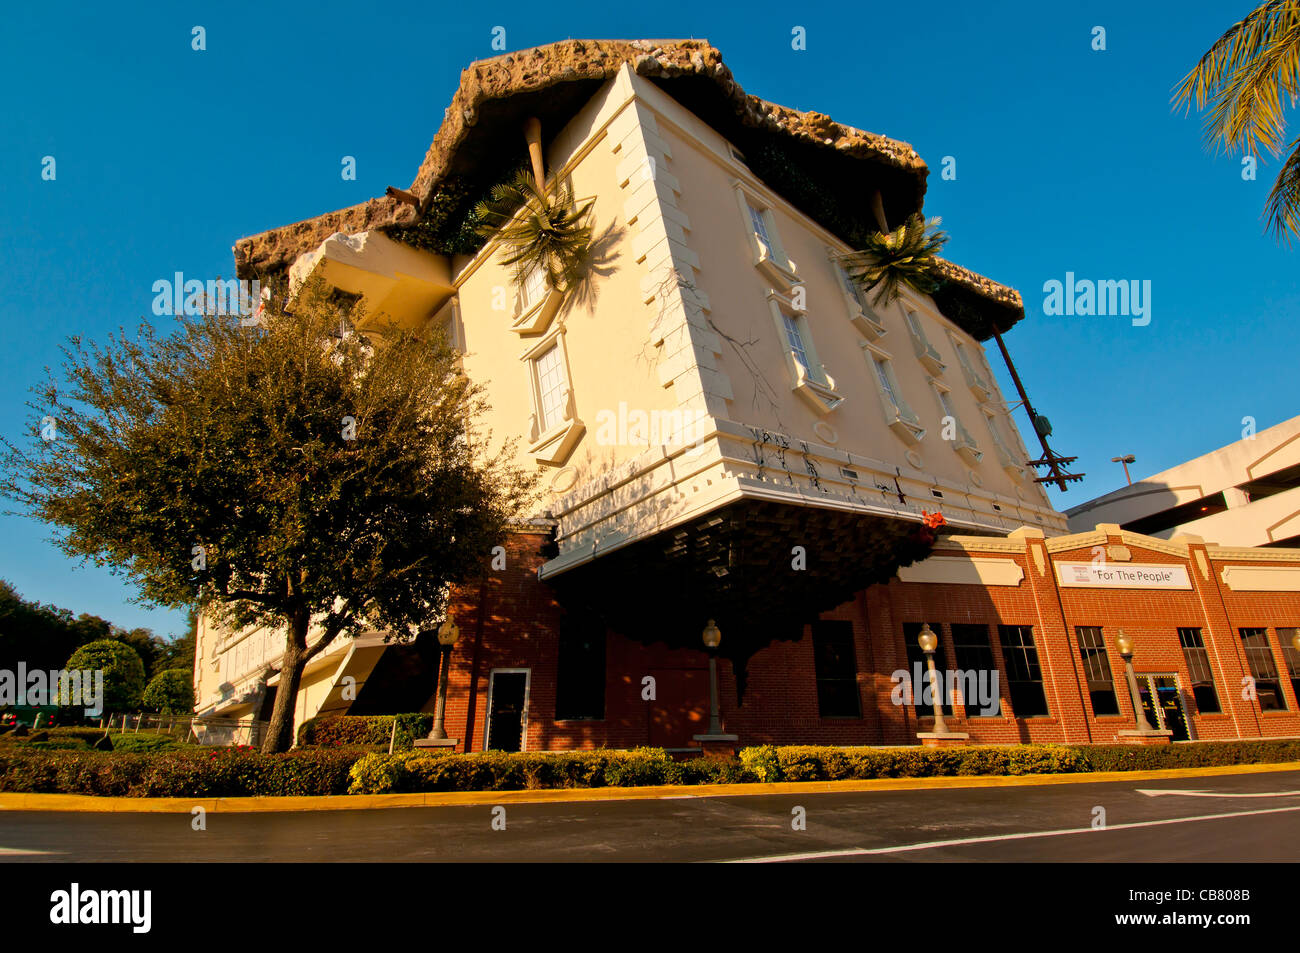 WonderWorks I-Drive attraction upside-down building with auto for size comparison, Orlando, Florida - Stock Image